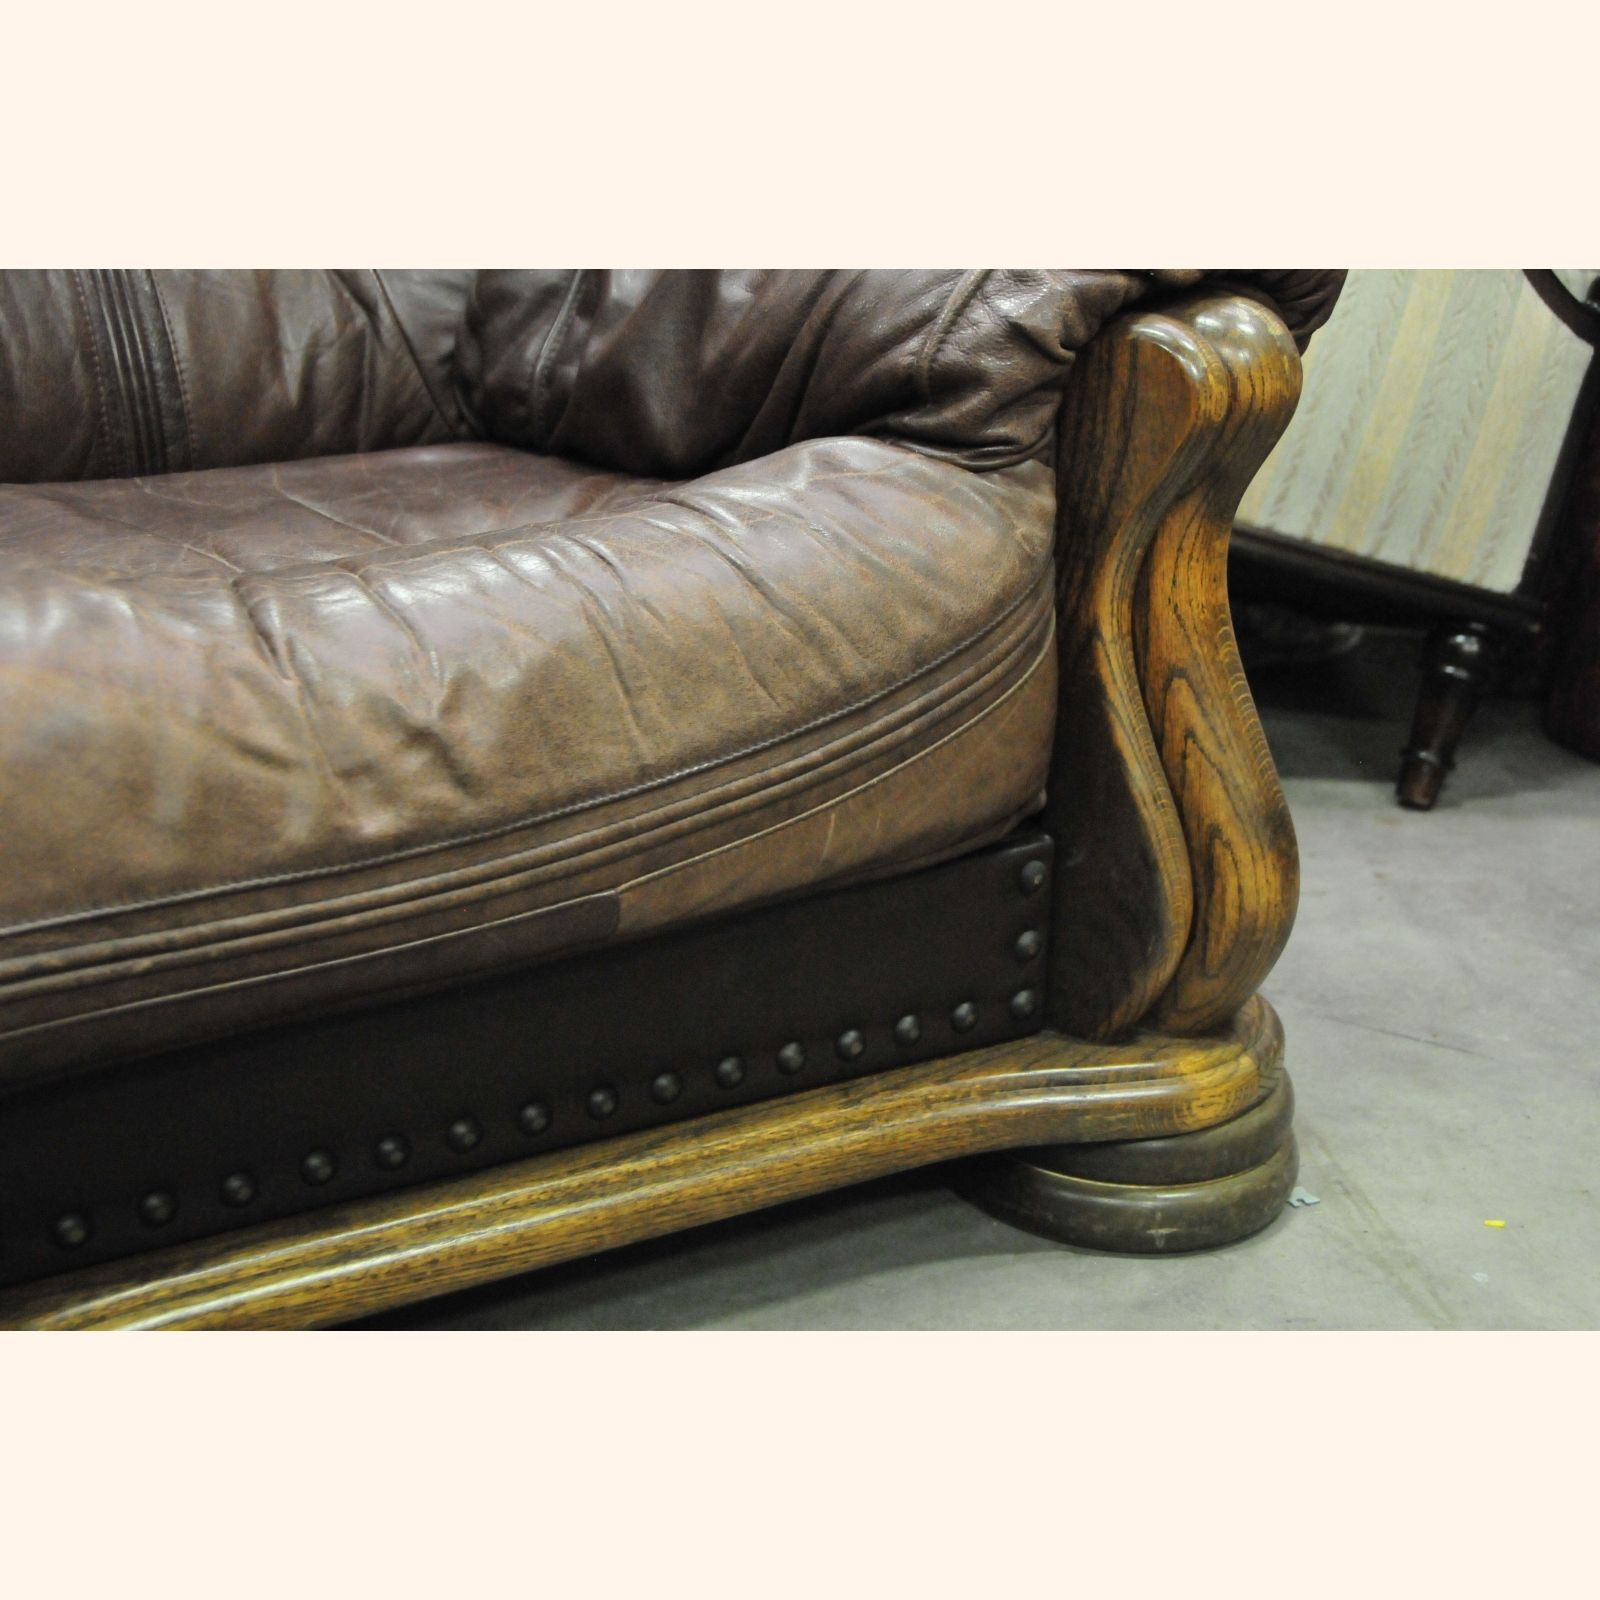 belgium leather sofas belgium leather sofas couch sofa Leather Chairs Brown Leather Sofa